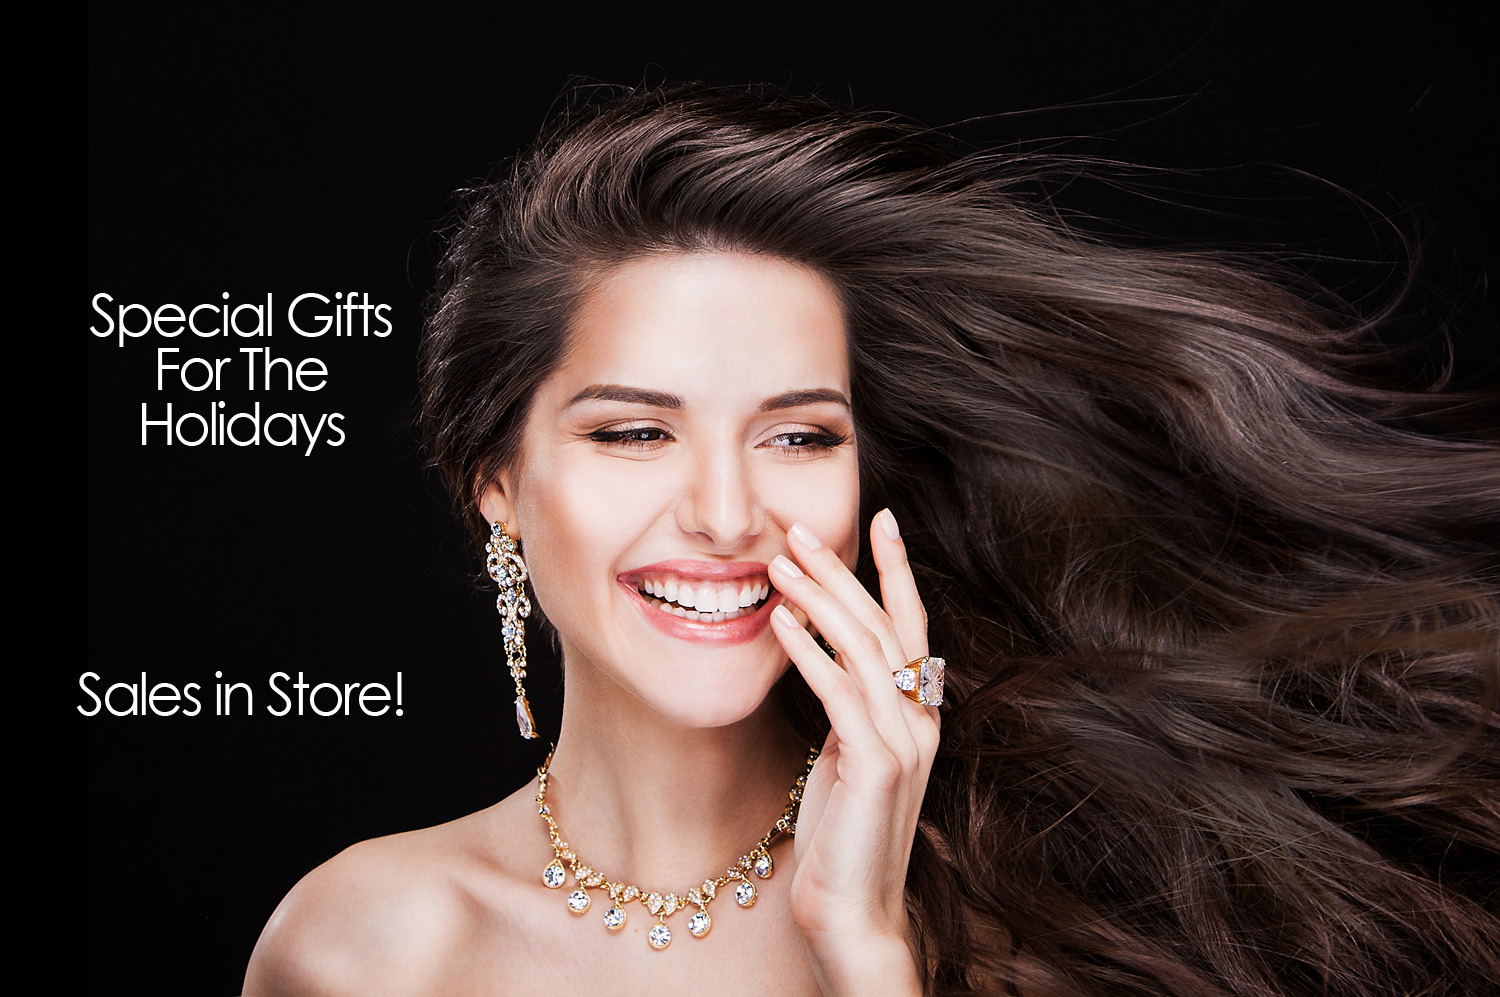 Gifts For Holidays Sales Jewelry Atlanta